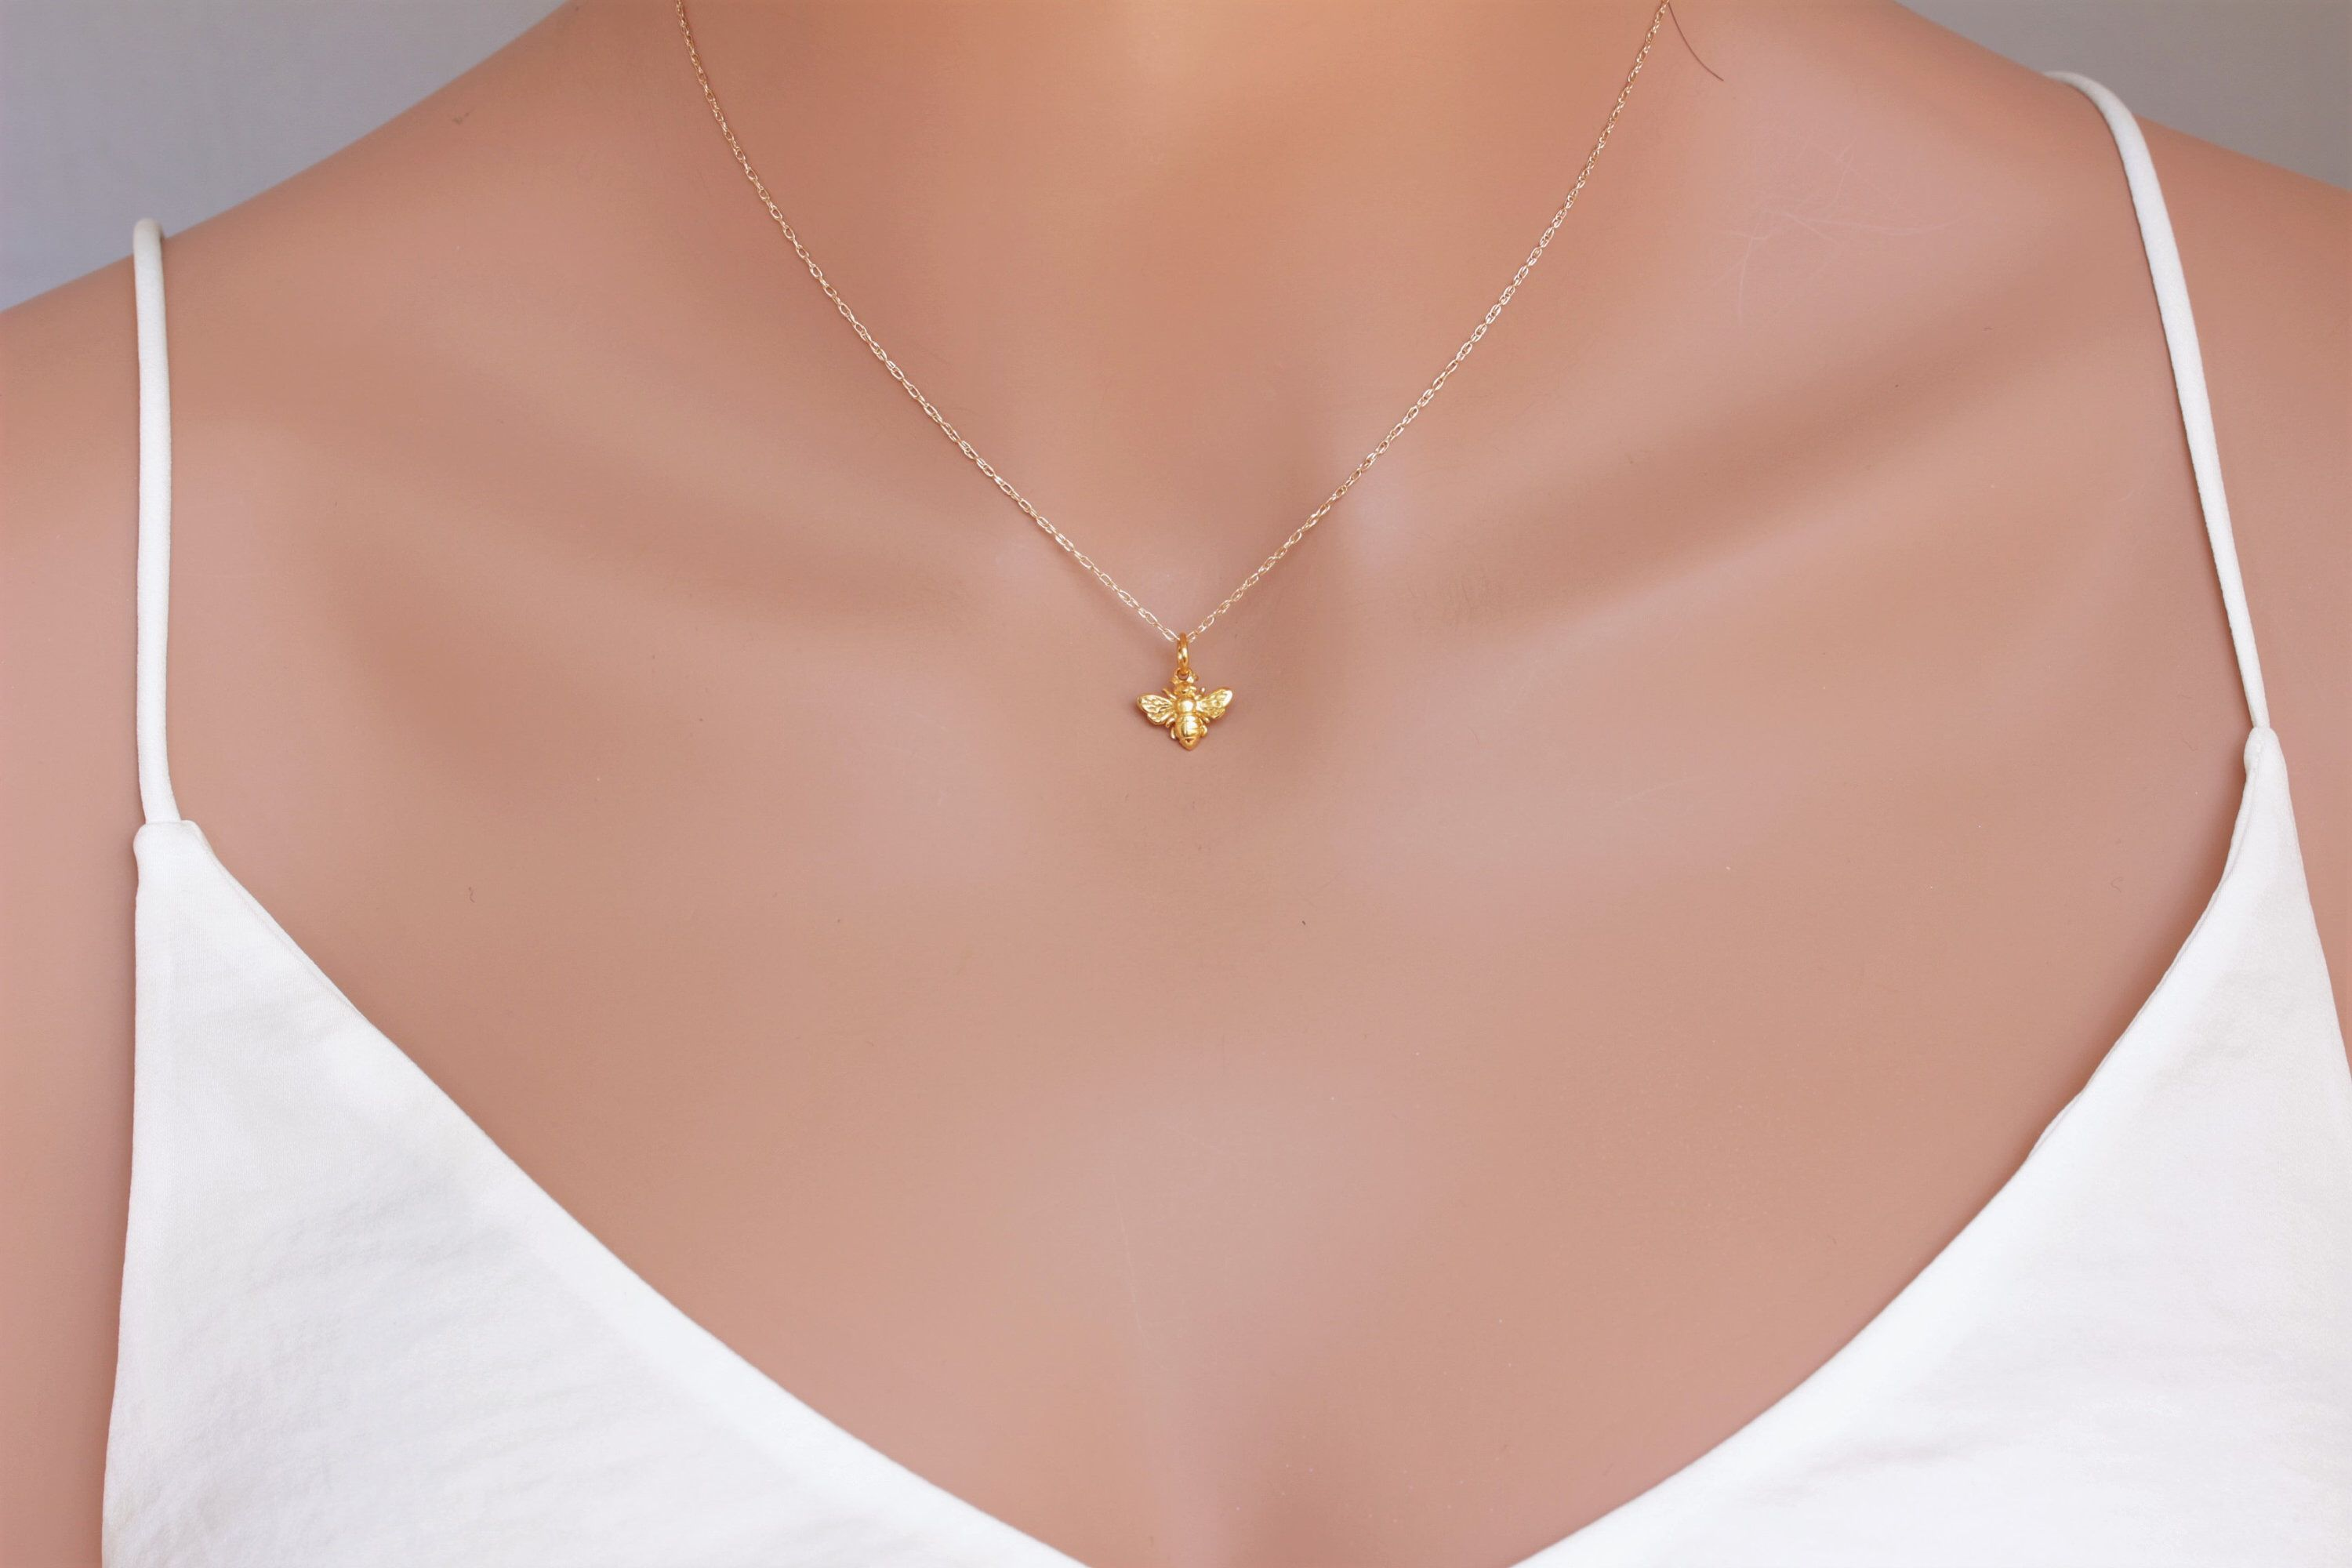 16 14K Solid Yellow Gold Horizontal Bar Necklace in 14K Gold Diamond Cut Cable Chain Necklace